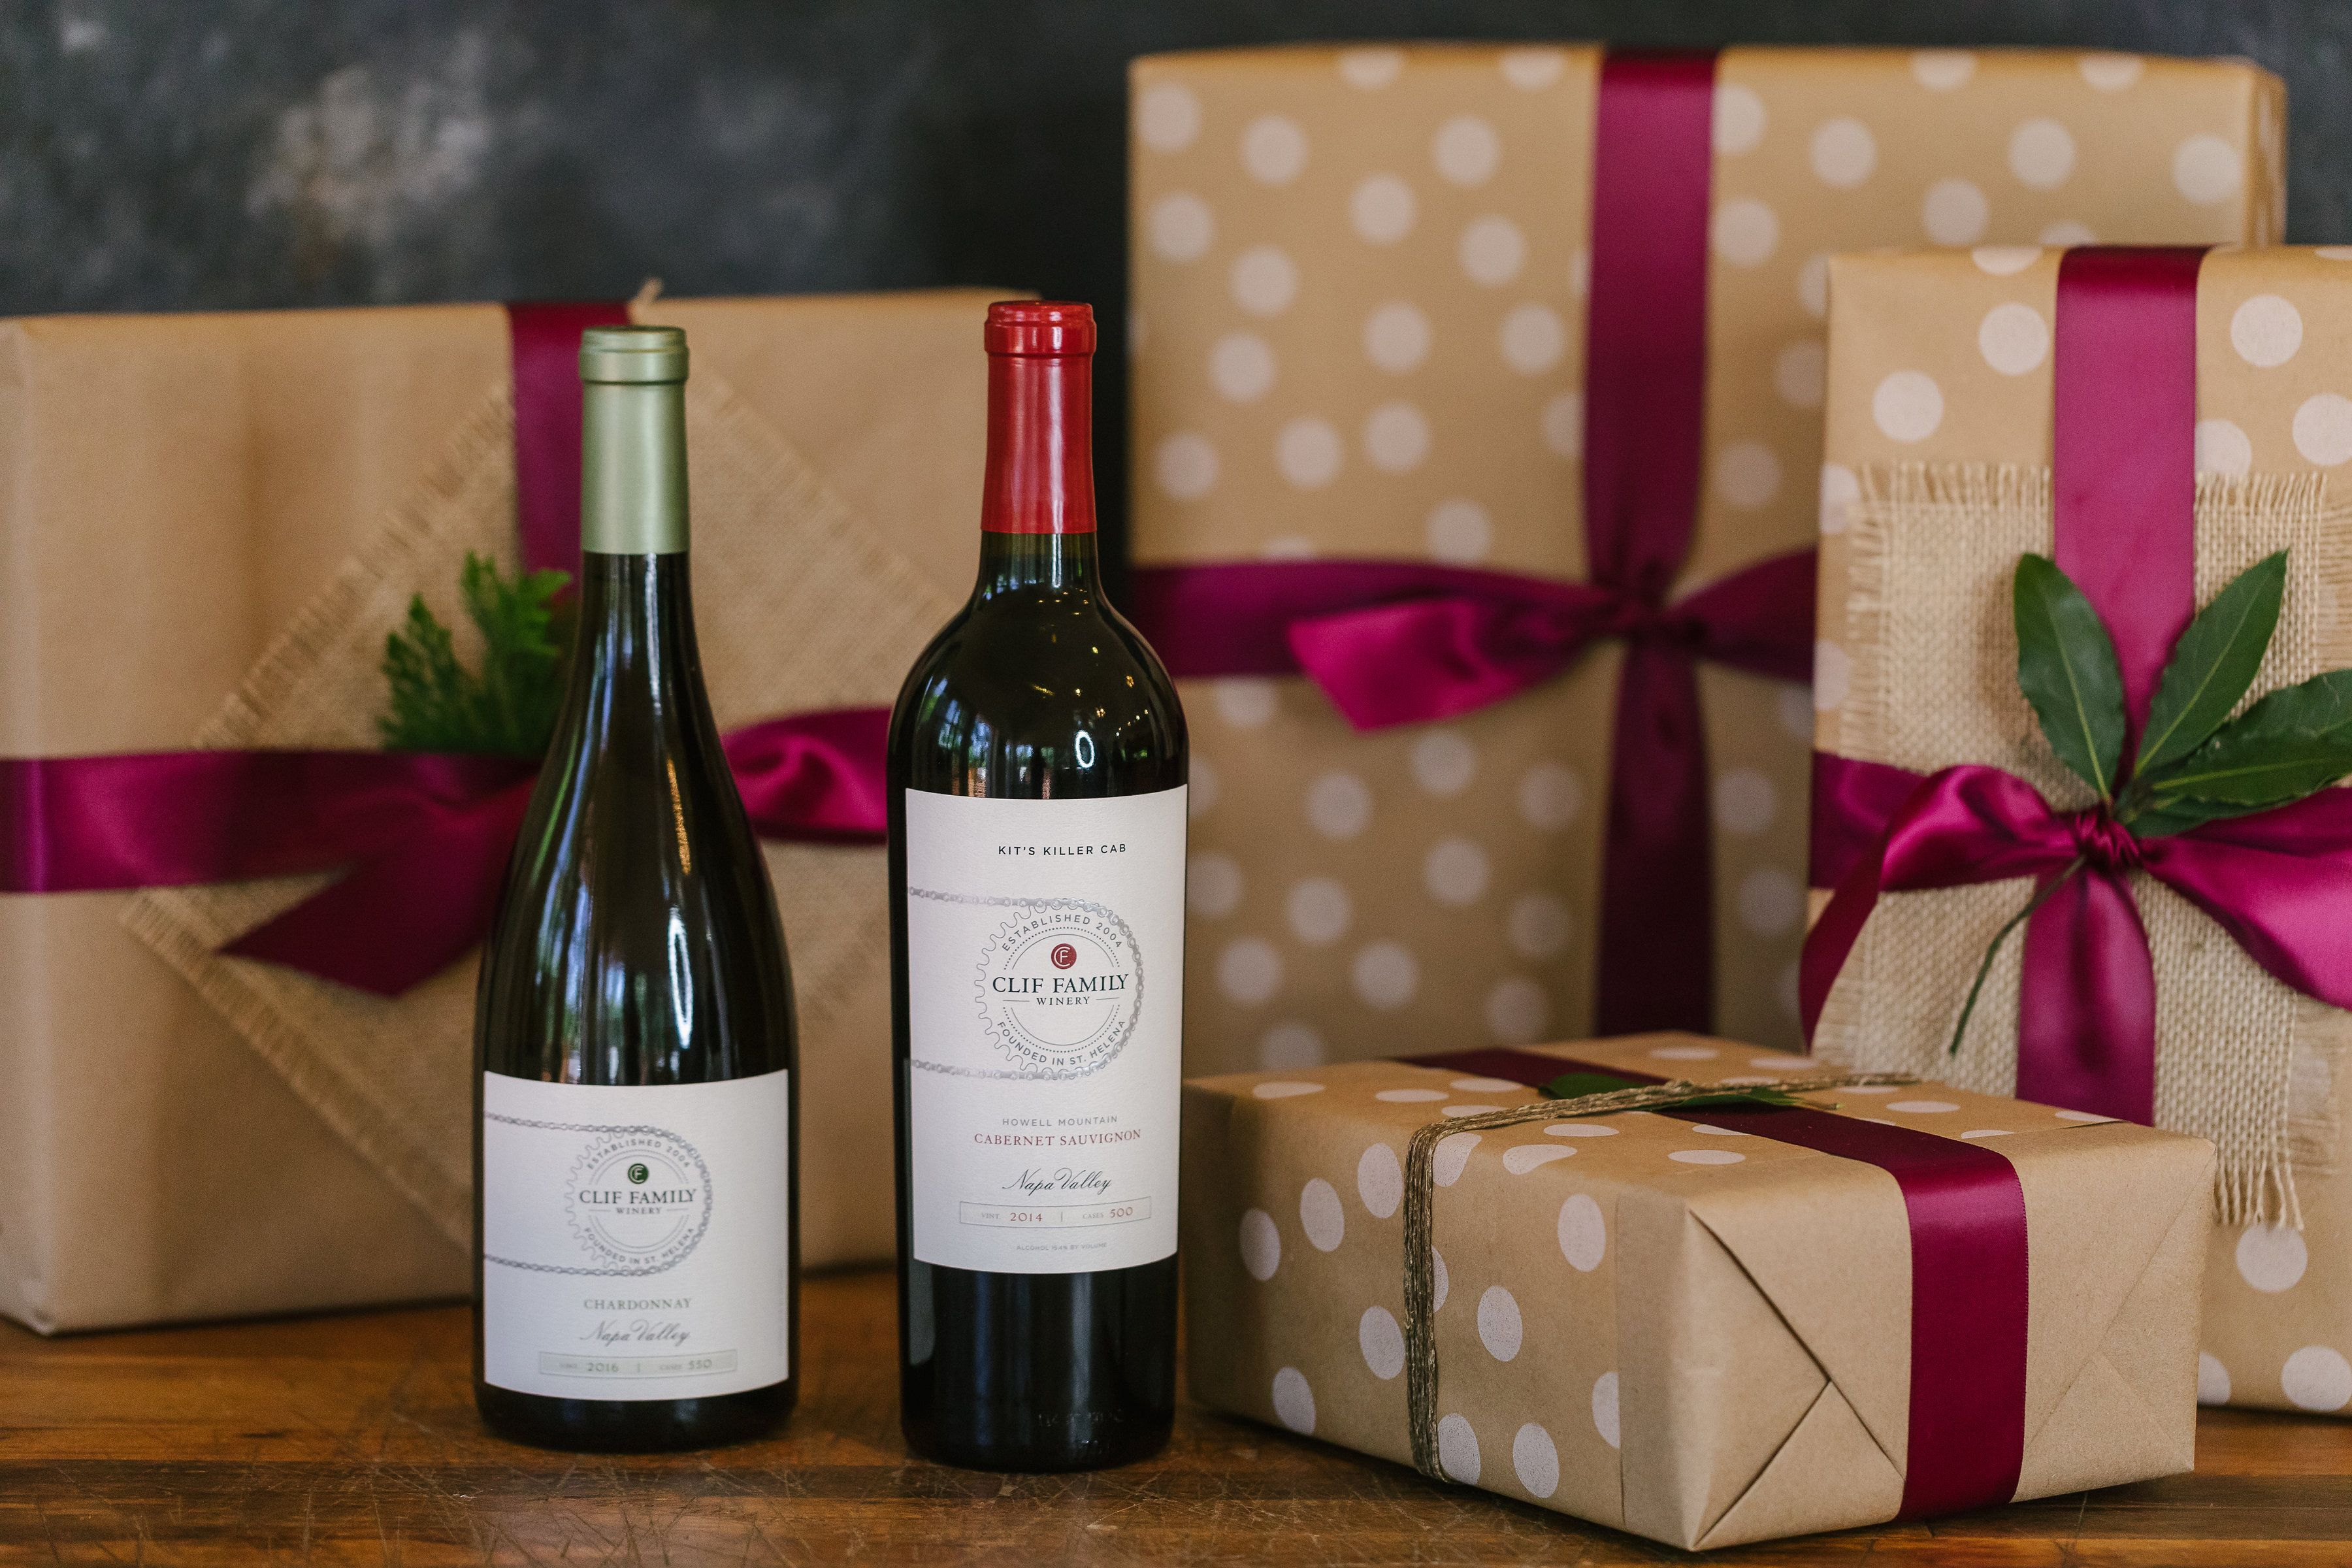 Explore our selection of small-production, Napa Valley wines online at www.cliffamily.com #winegifts #napavalley #napagifts #holidaygifts #napa #winecountry ...